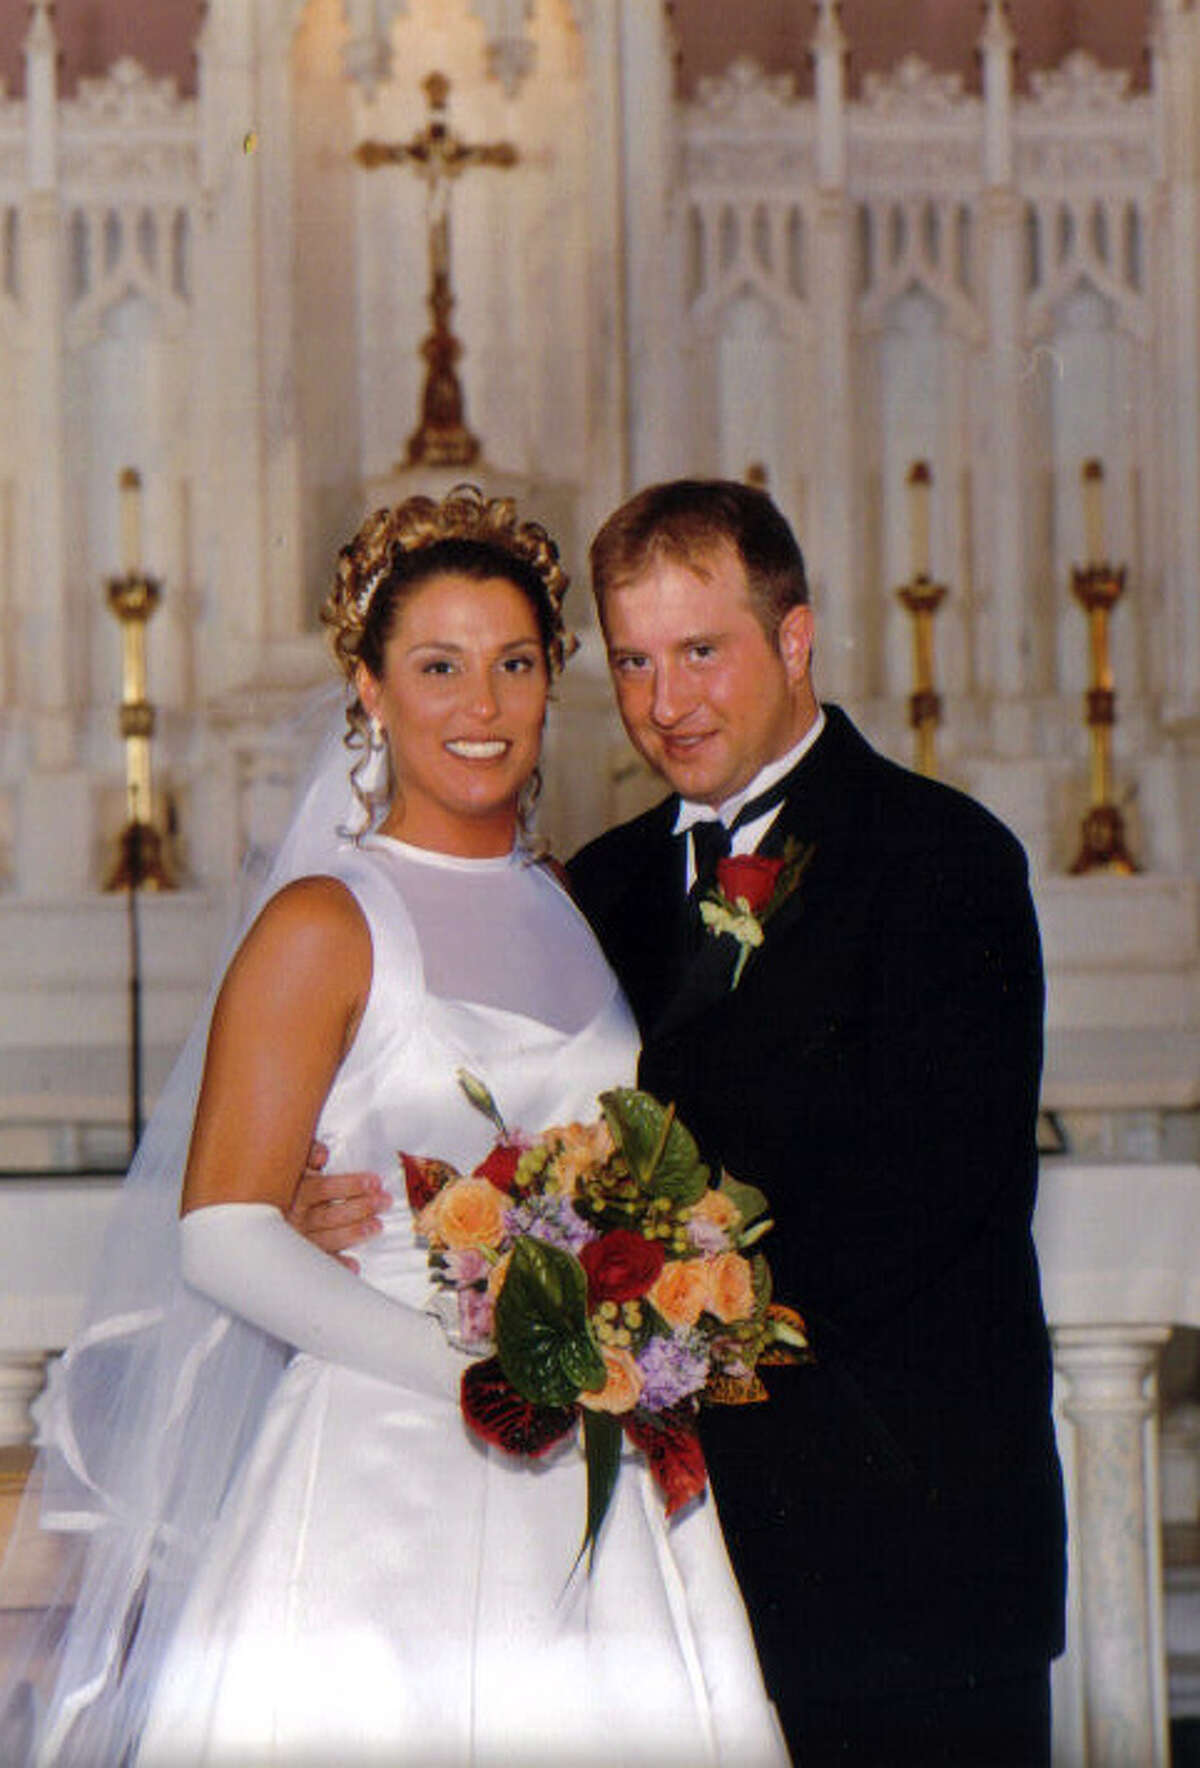 Michele and John Bissenden were married Sept. 15th, 2001